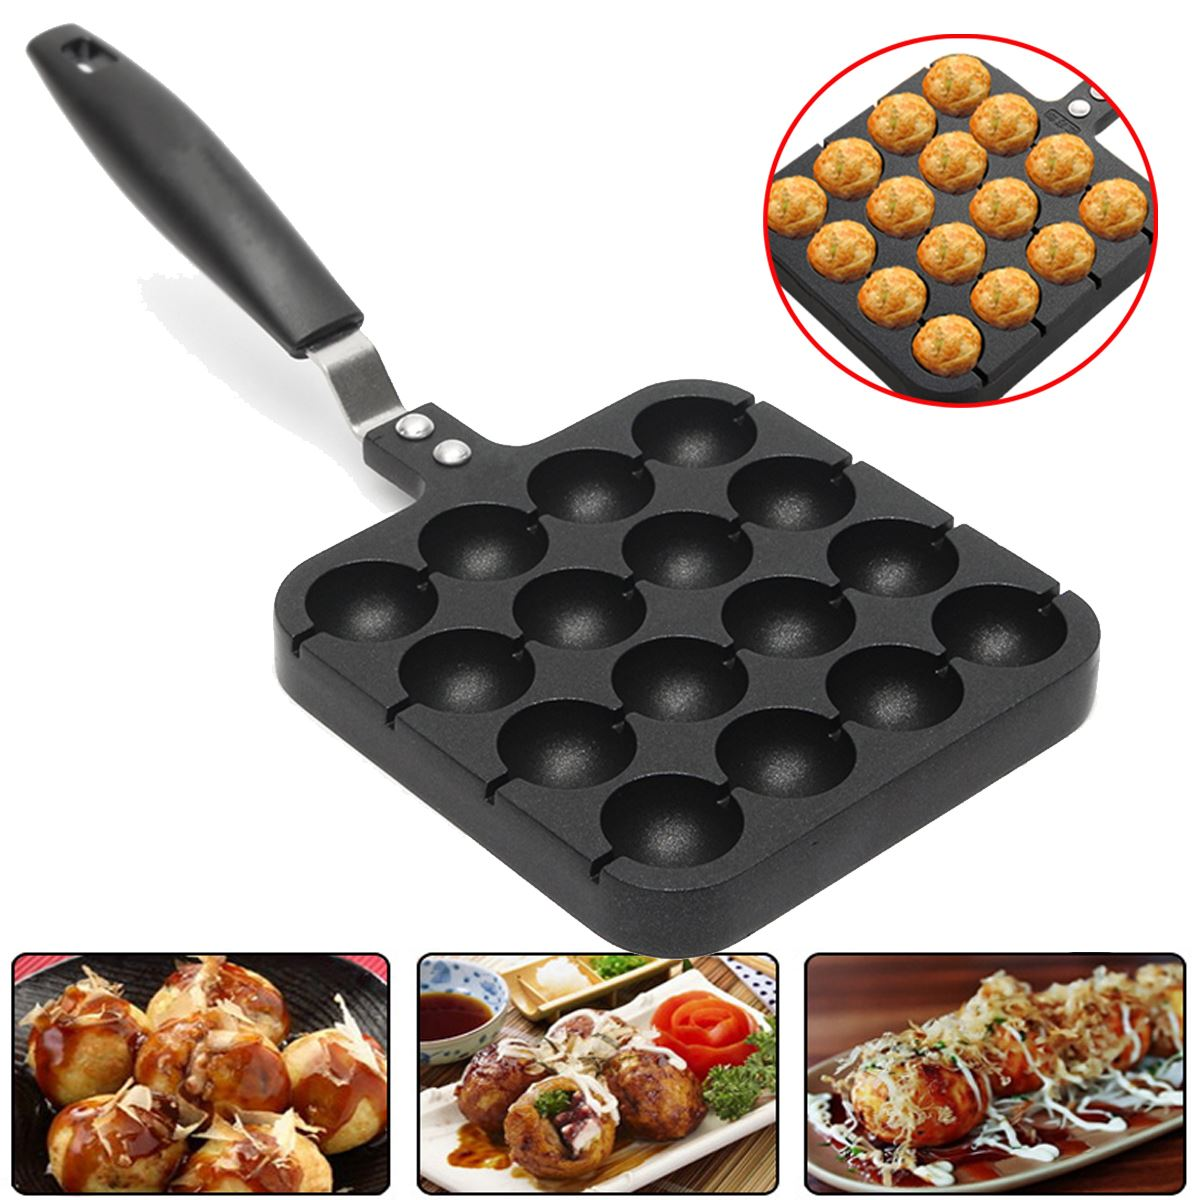 16 Holes Takoyaki Grill Pan Plate Mold Octopus Ball Maker With Handle Home Cooking Baking Decorating